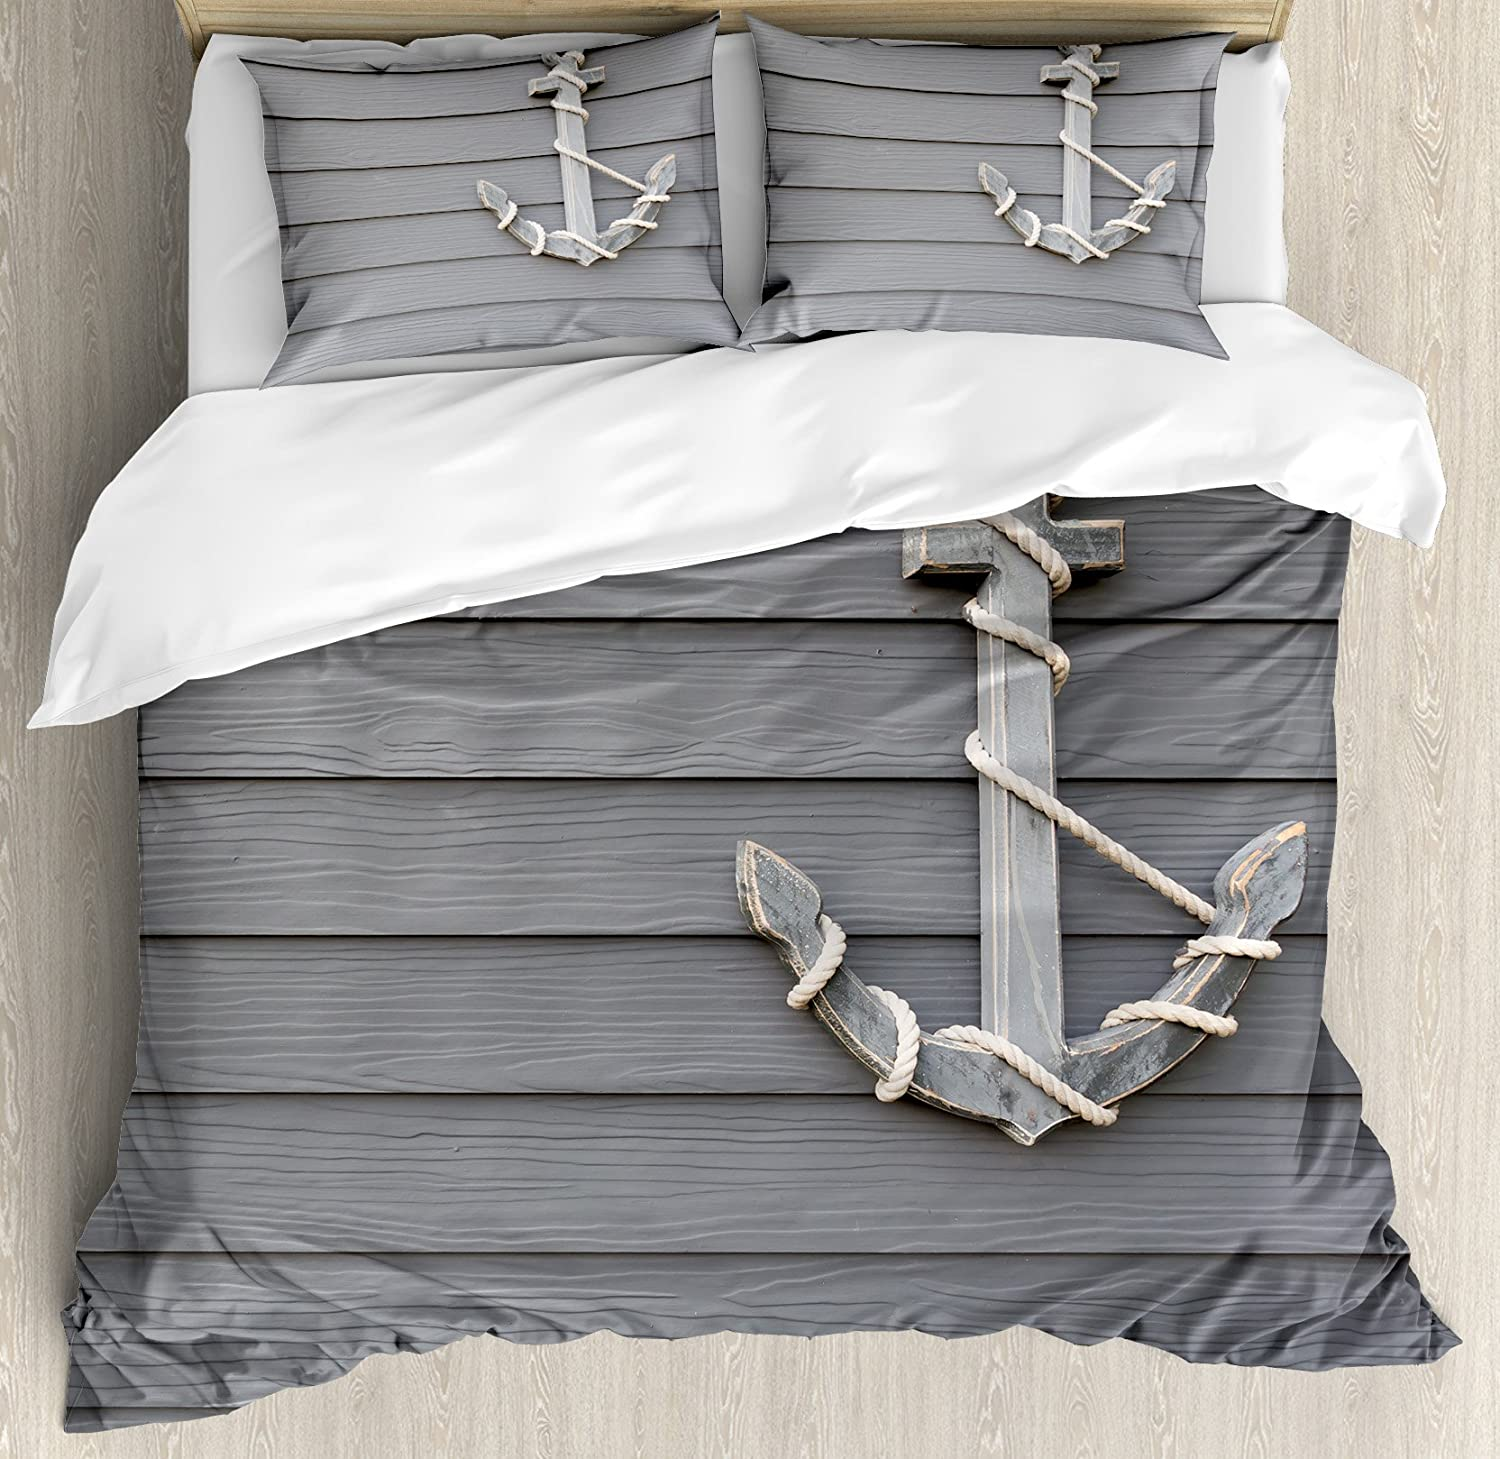 Ambesonne Anchor Duvet Cover Set, Wooden Anchor with The Rope on The Wall Antique Navy Nature Adventure Themed Art Work, Decorative 3 Piece Bedding Set with 2 Pillow Shams, Queen Size, Grey